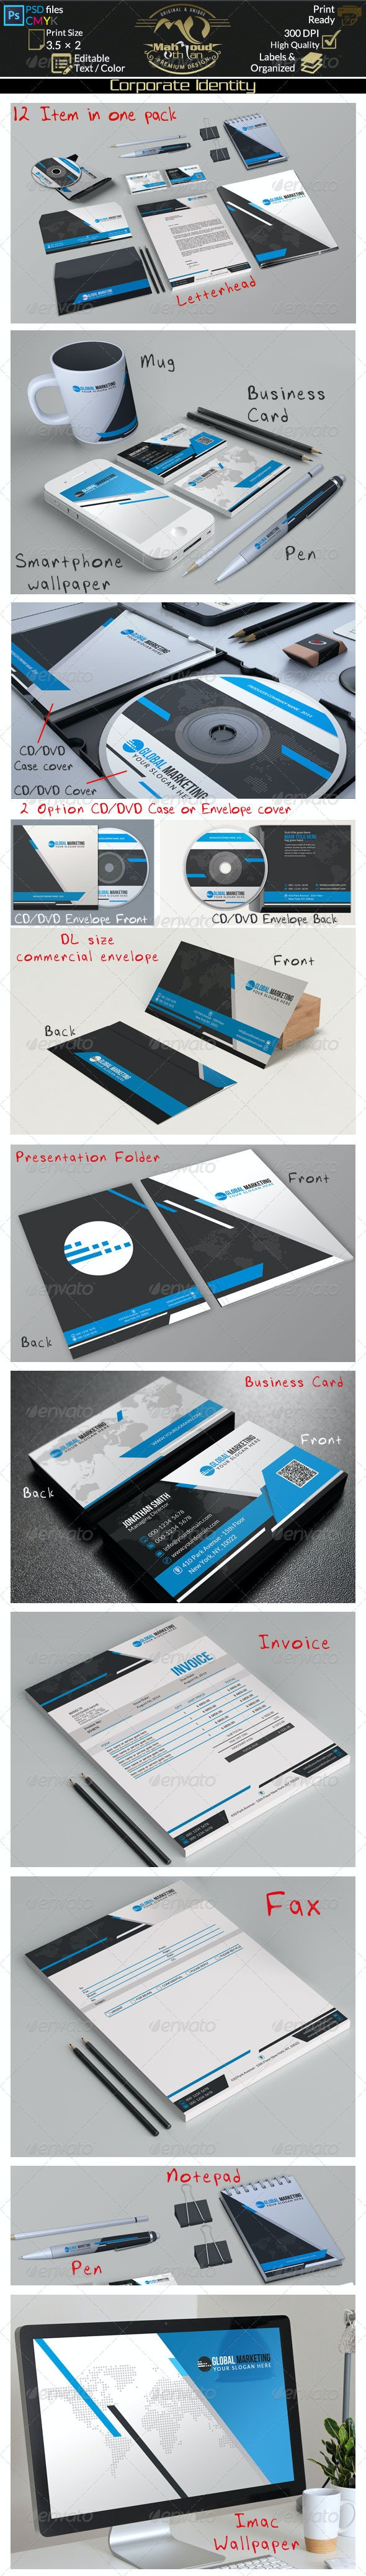 Blue Corporate Identity 03 - Stationery Print Templates